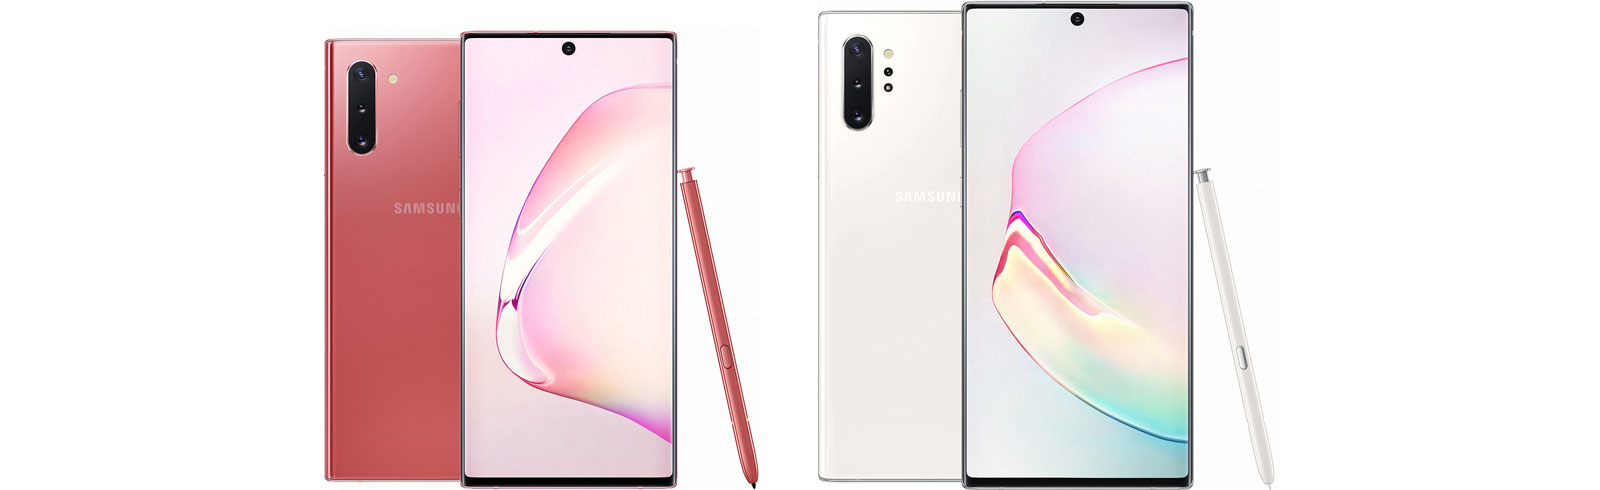 Official Galaxy Note 10 hands-on videos